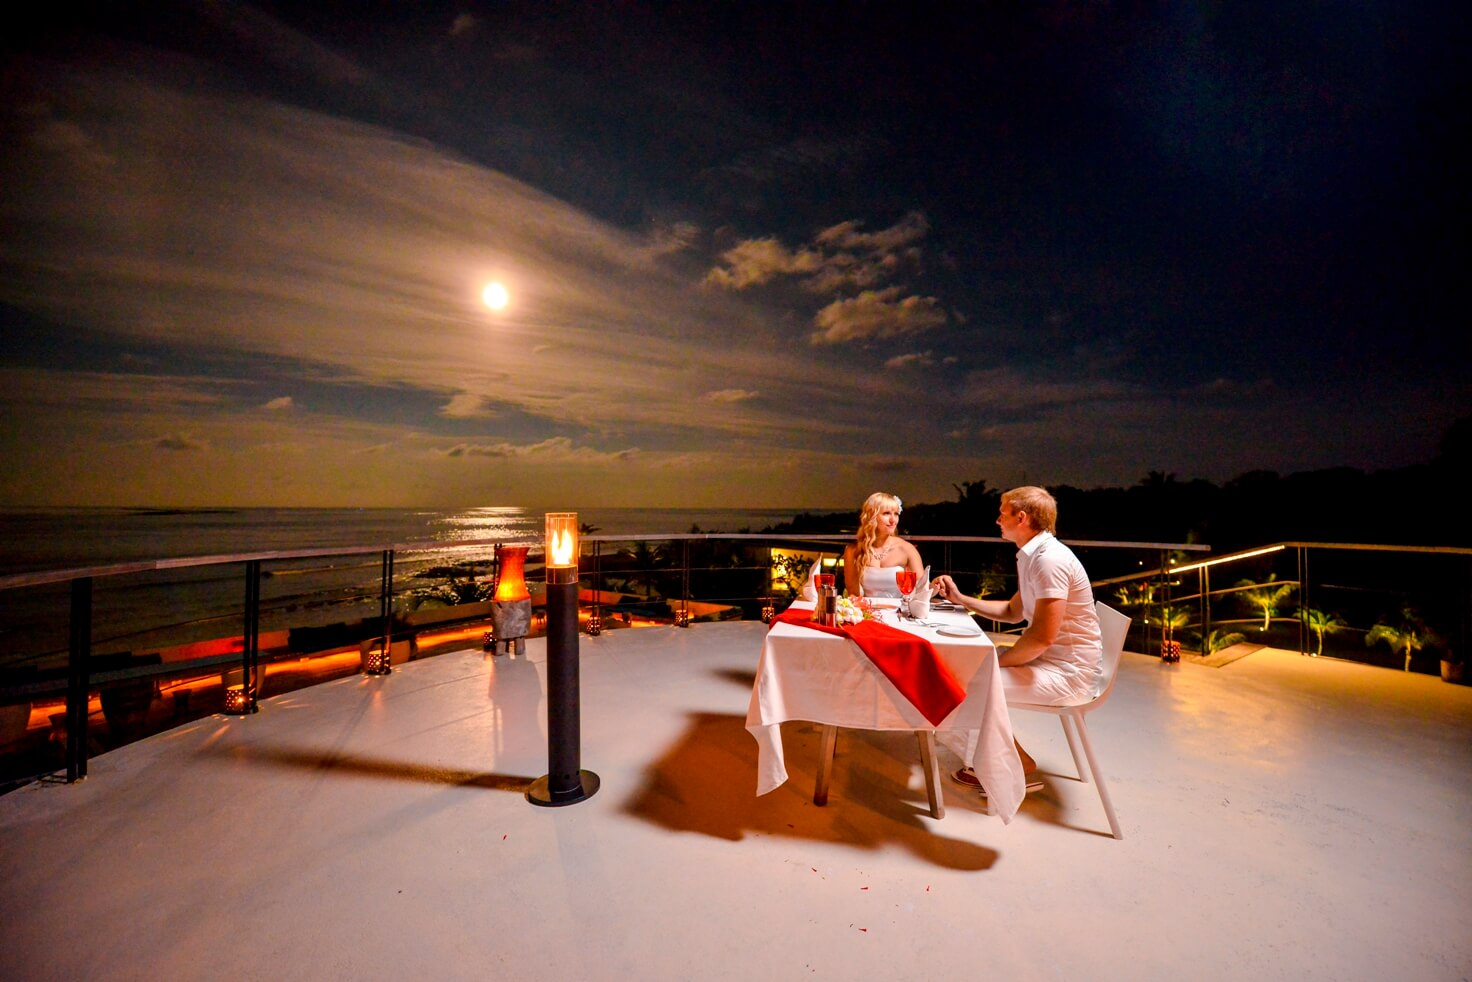 A couple on a cruise having dinner in moonlight